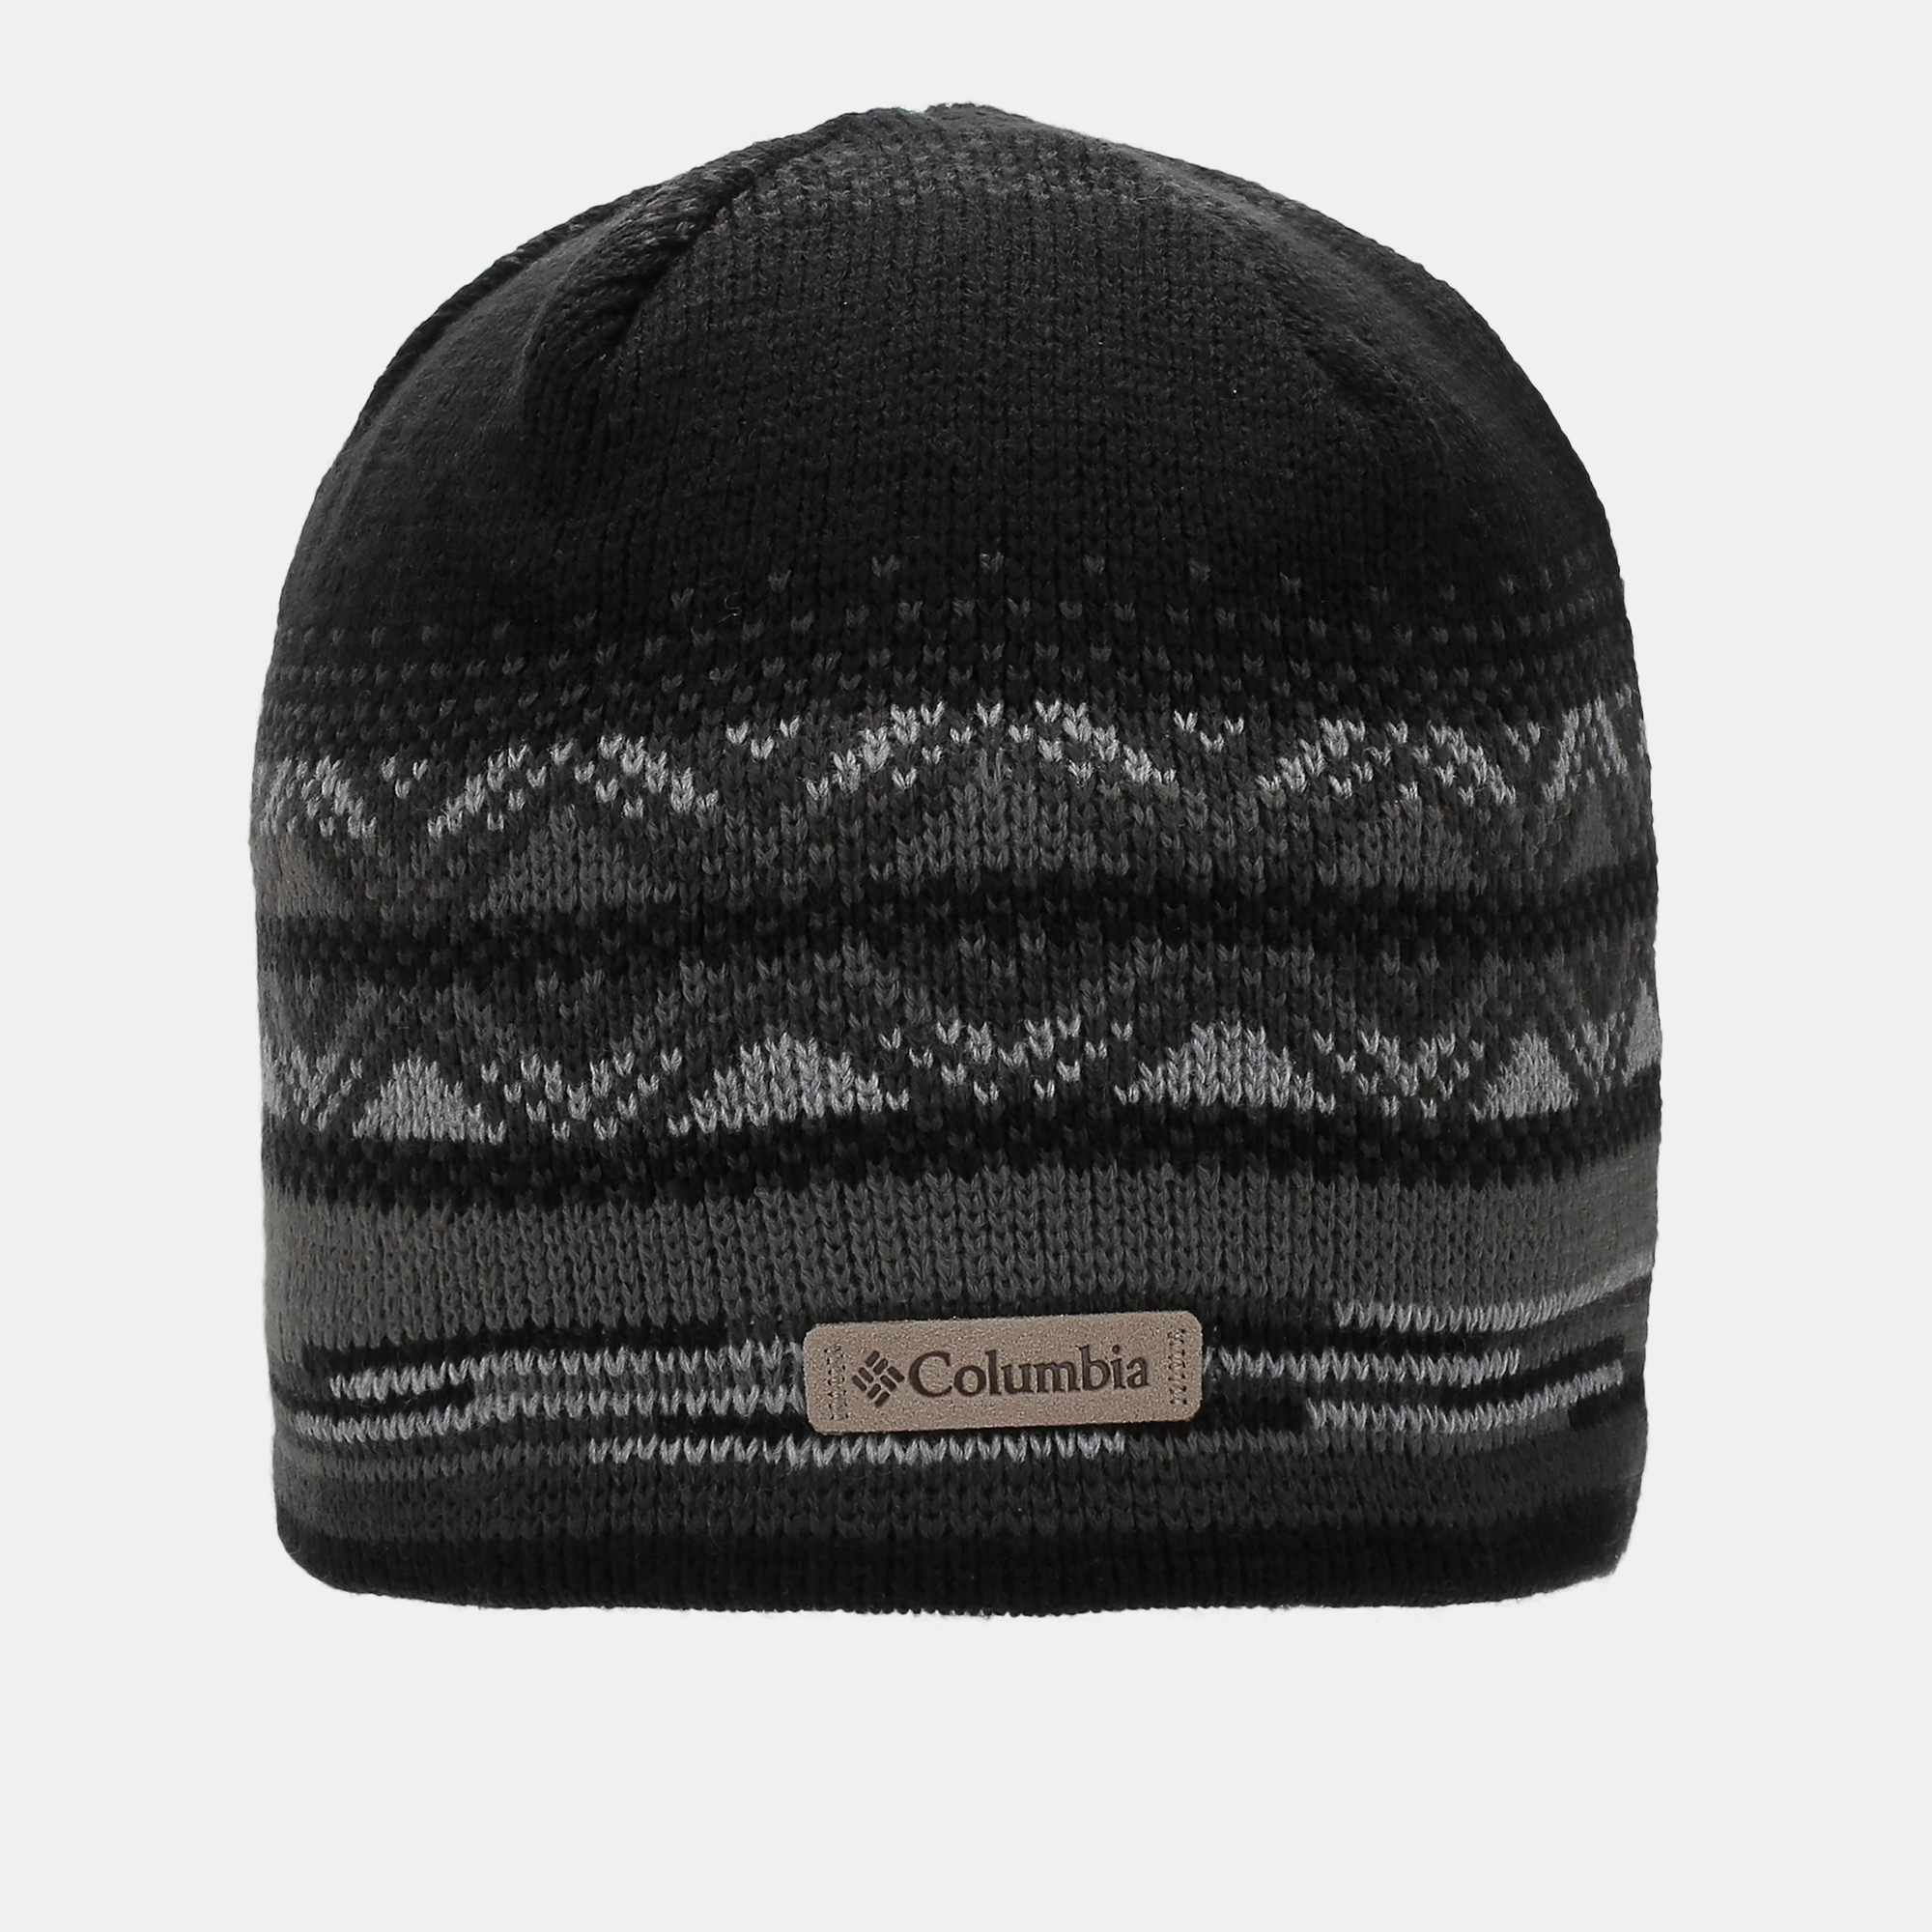 44a0023348f3a Columbia Alpine Action Beanie 233612 in Kuwait